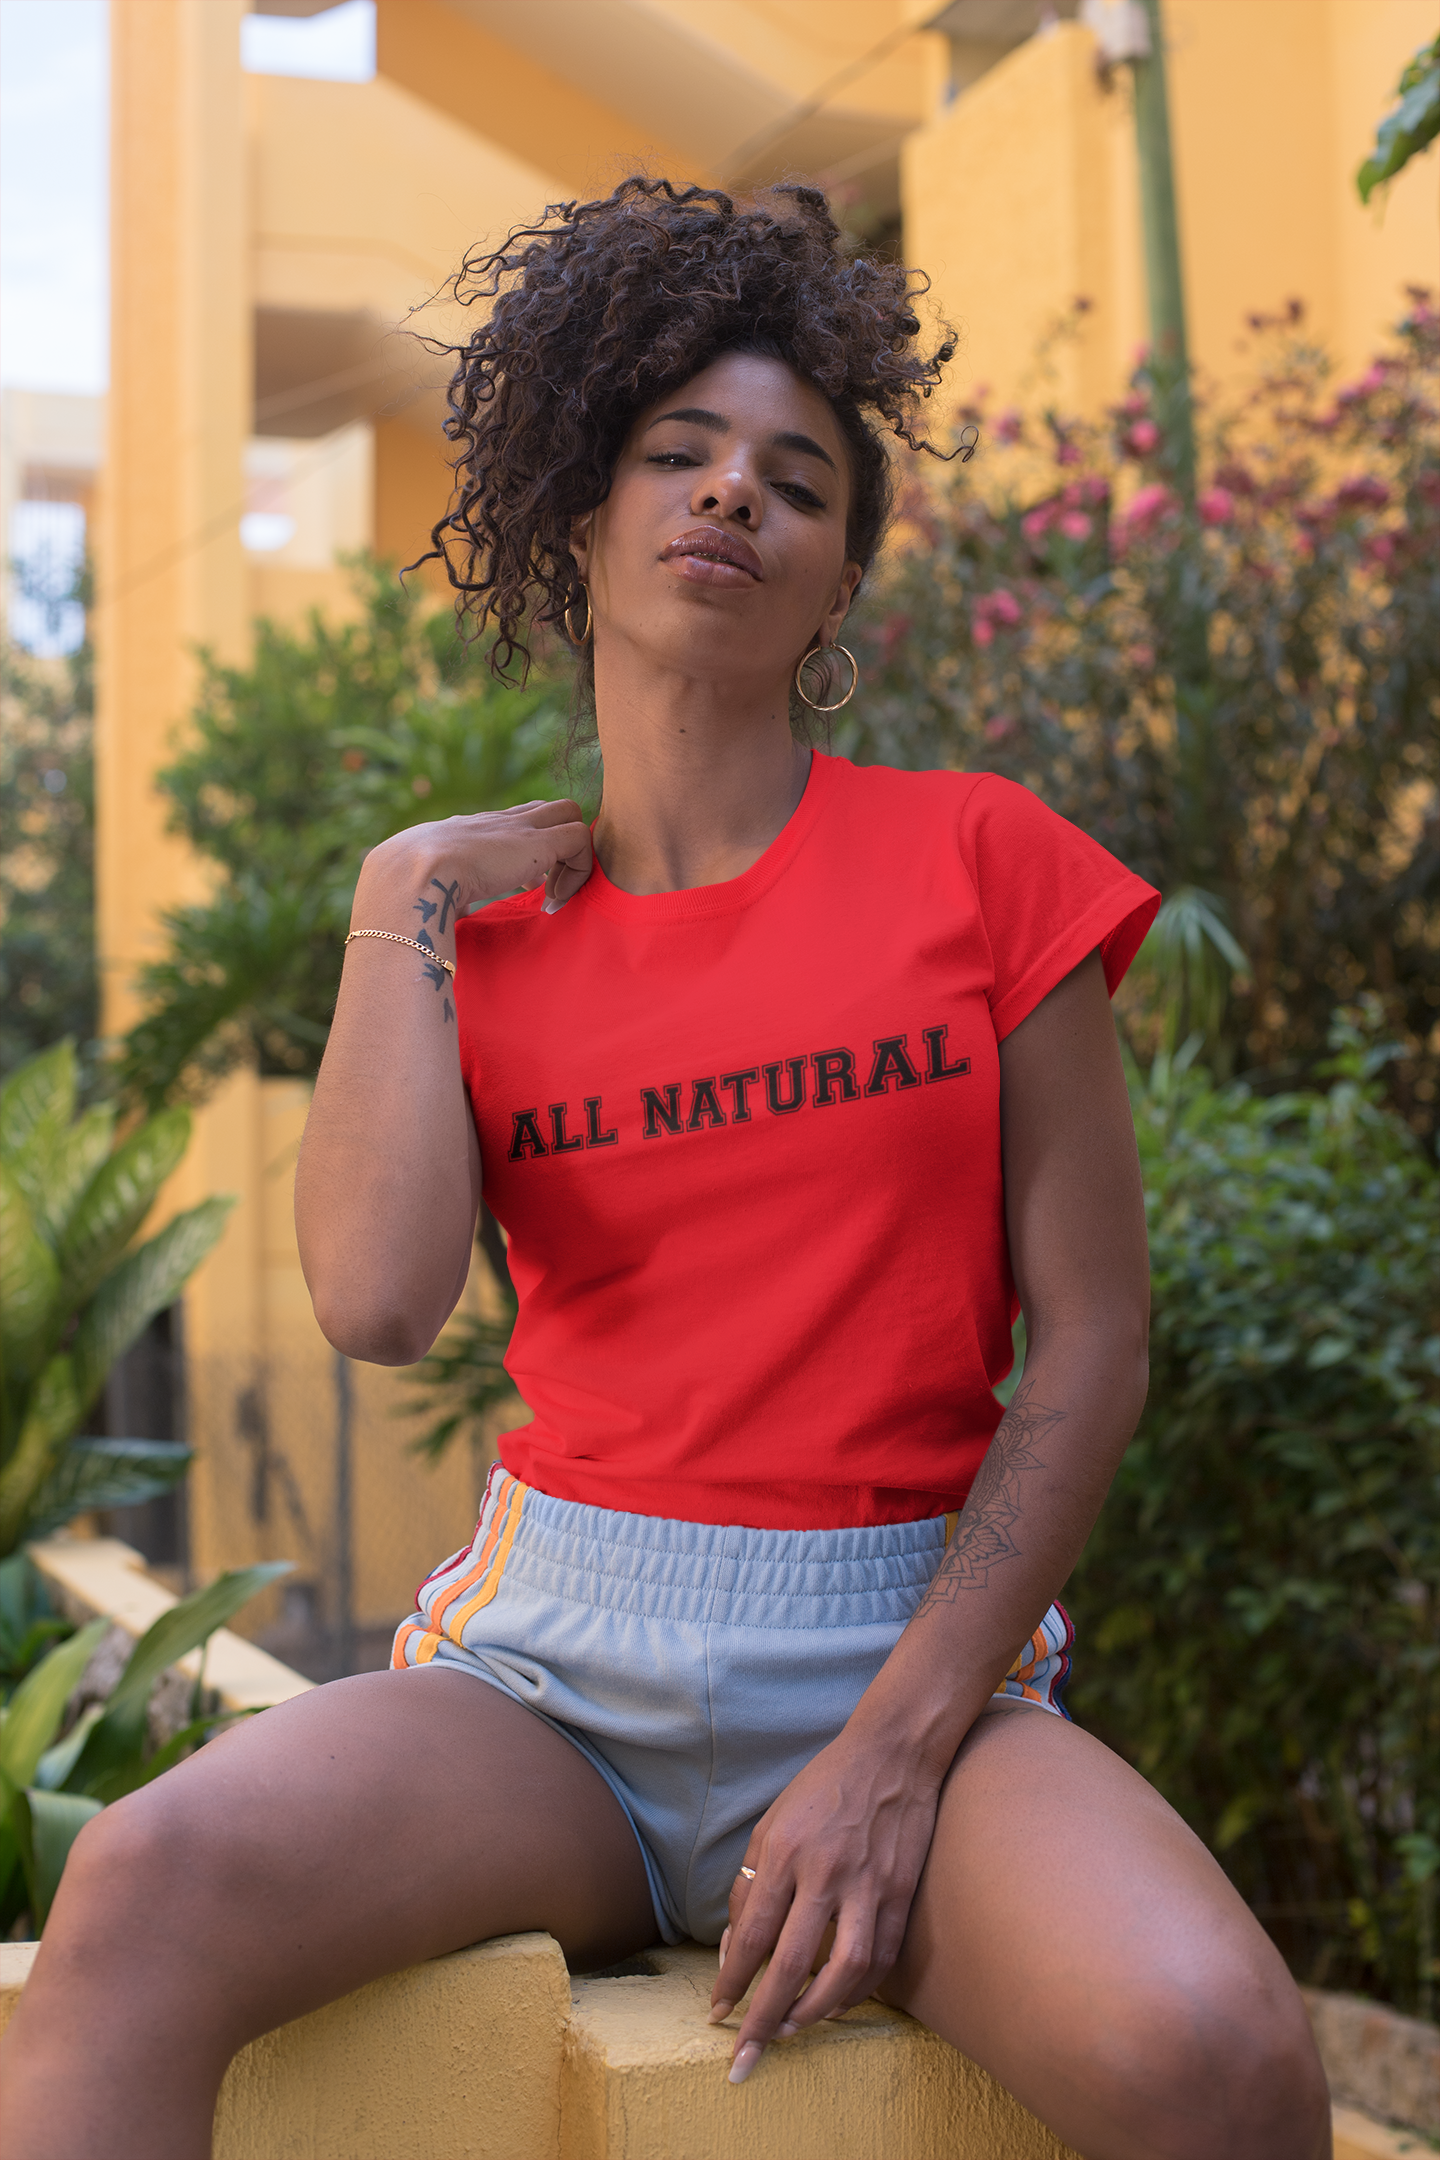 All Natural Tee - So Swag Apparel